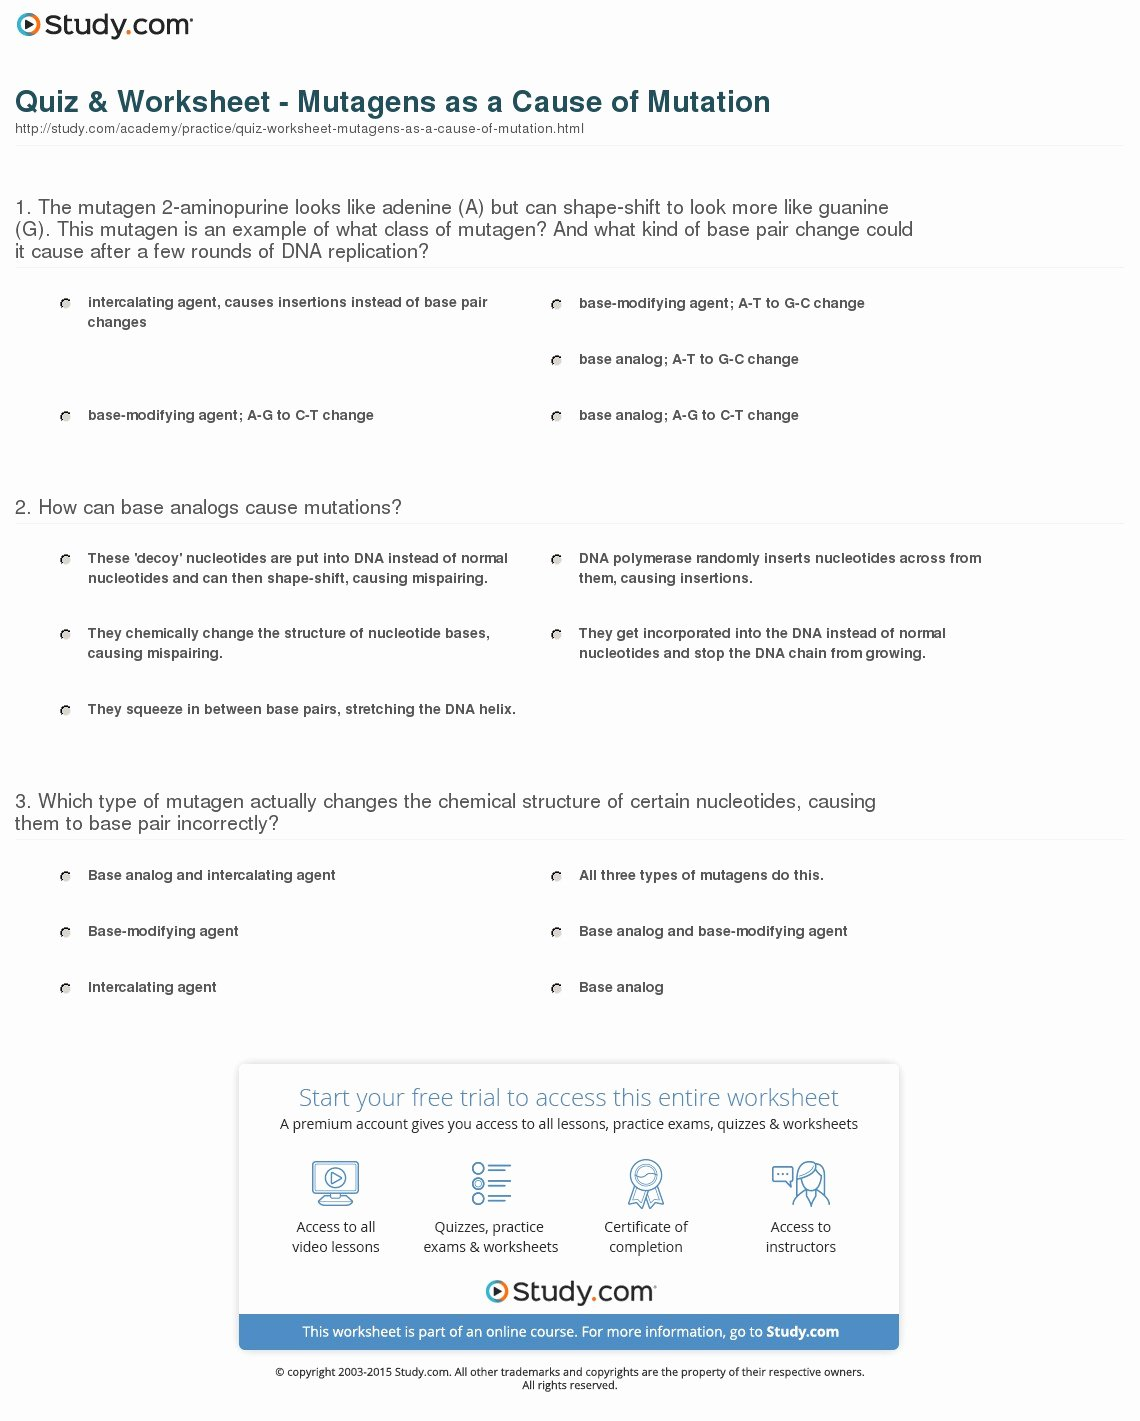 Dna Mutations Practice Worksheet Answer Luxury Quiz & Worksheet Mutagens as A Cause Of Mutation